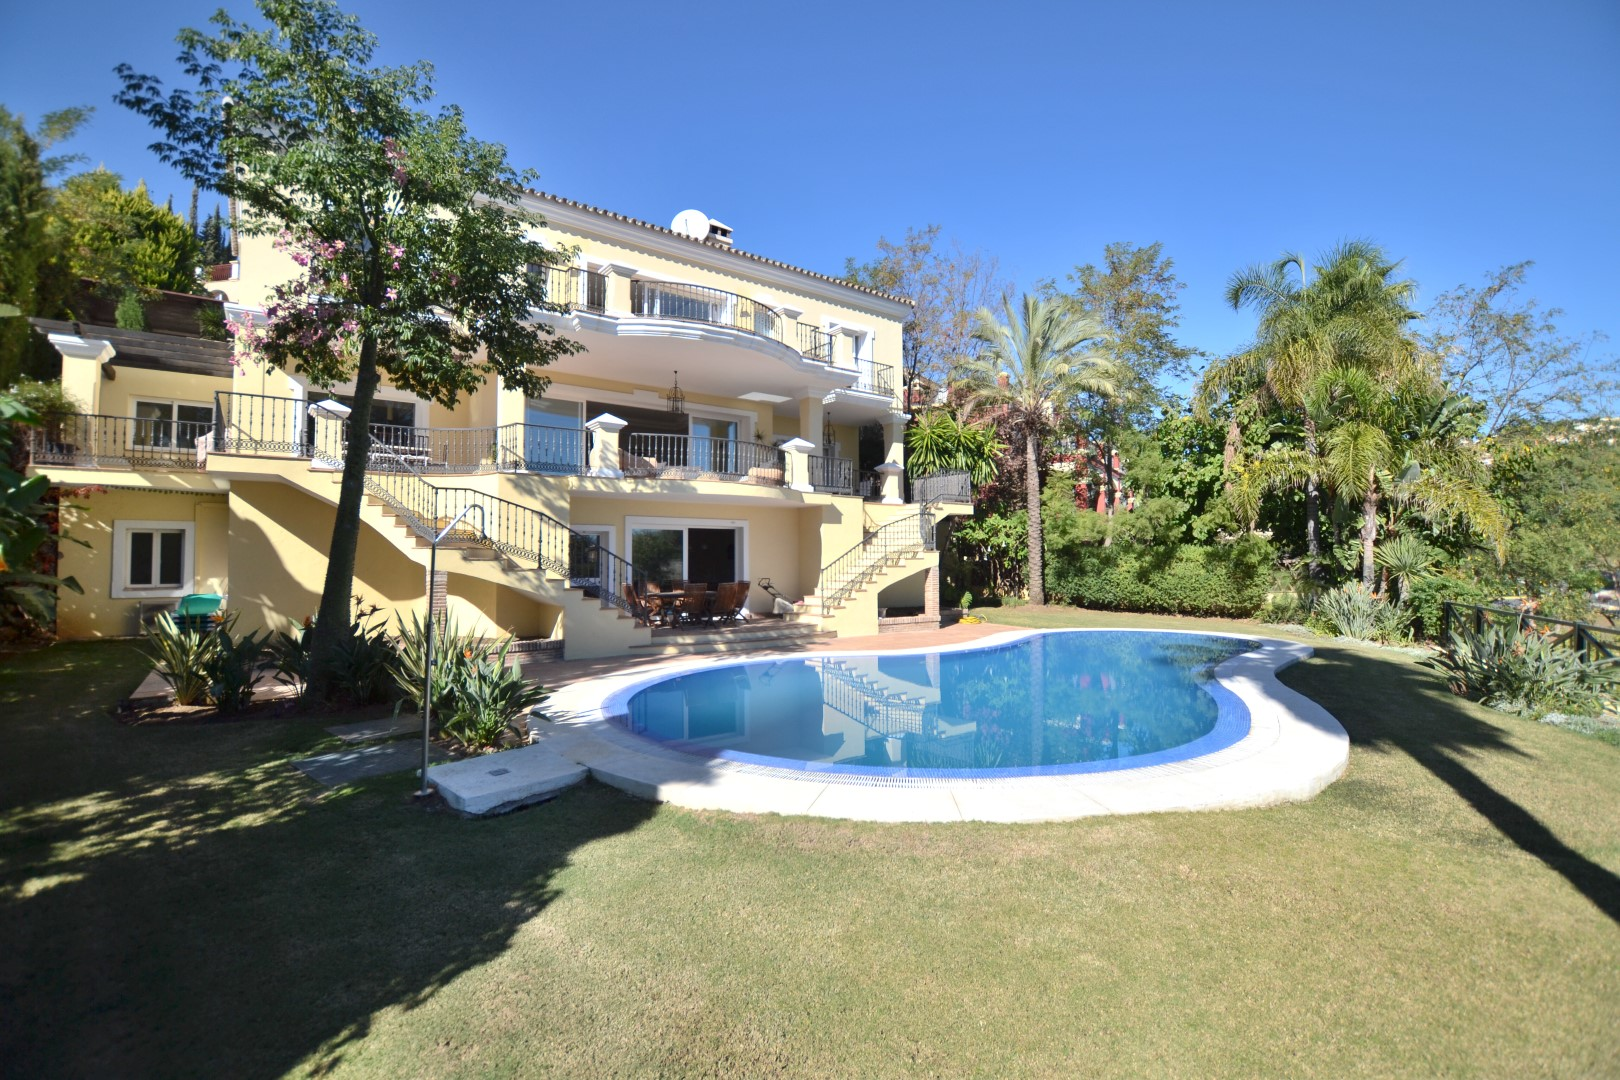 AH2816 - 7 Bed Family Villa La Quinta, Benahavis